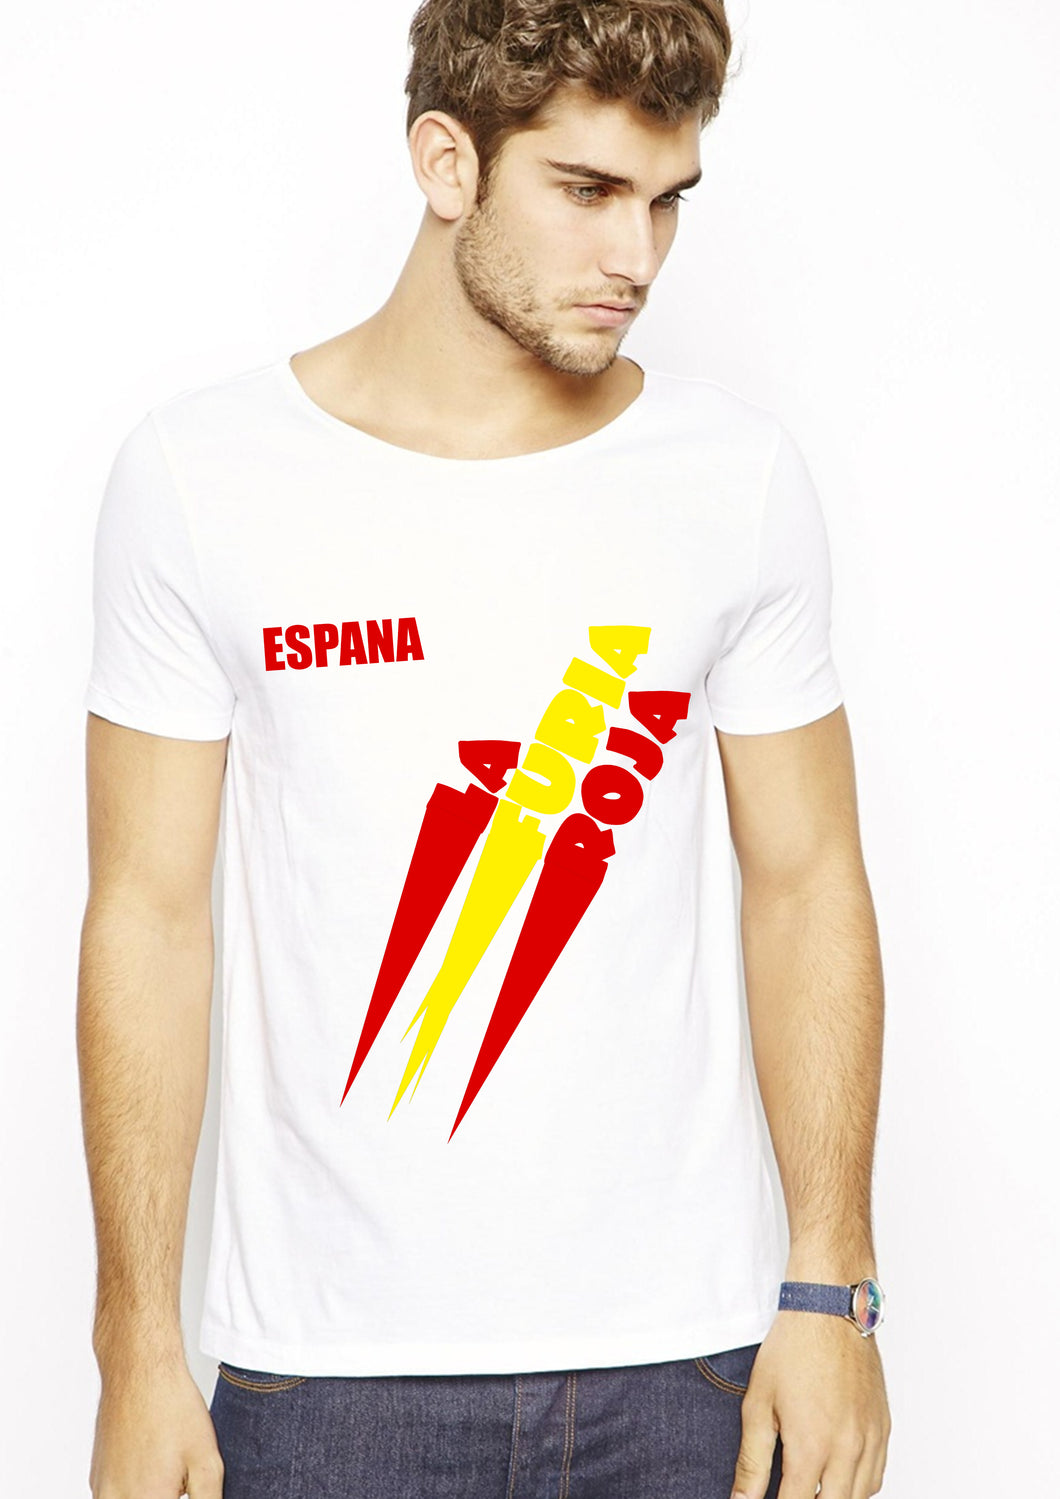 La Roja white T-shirt